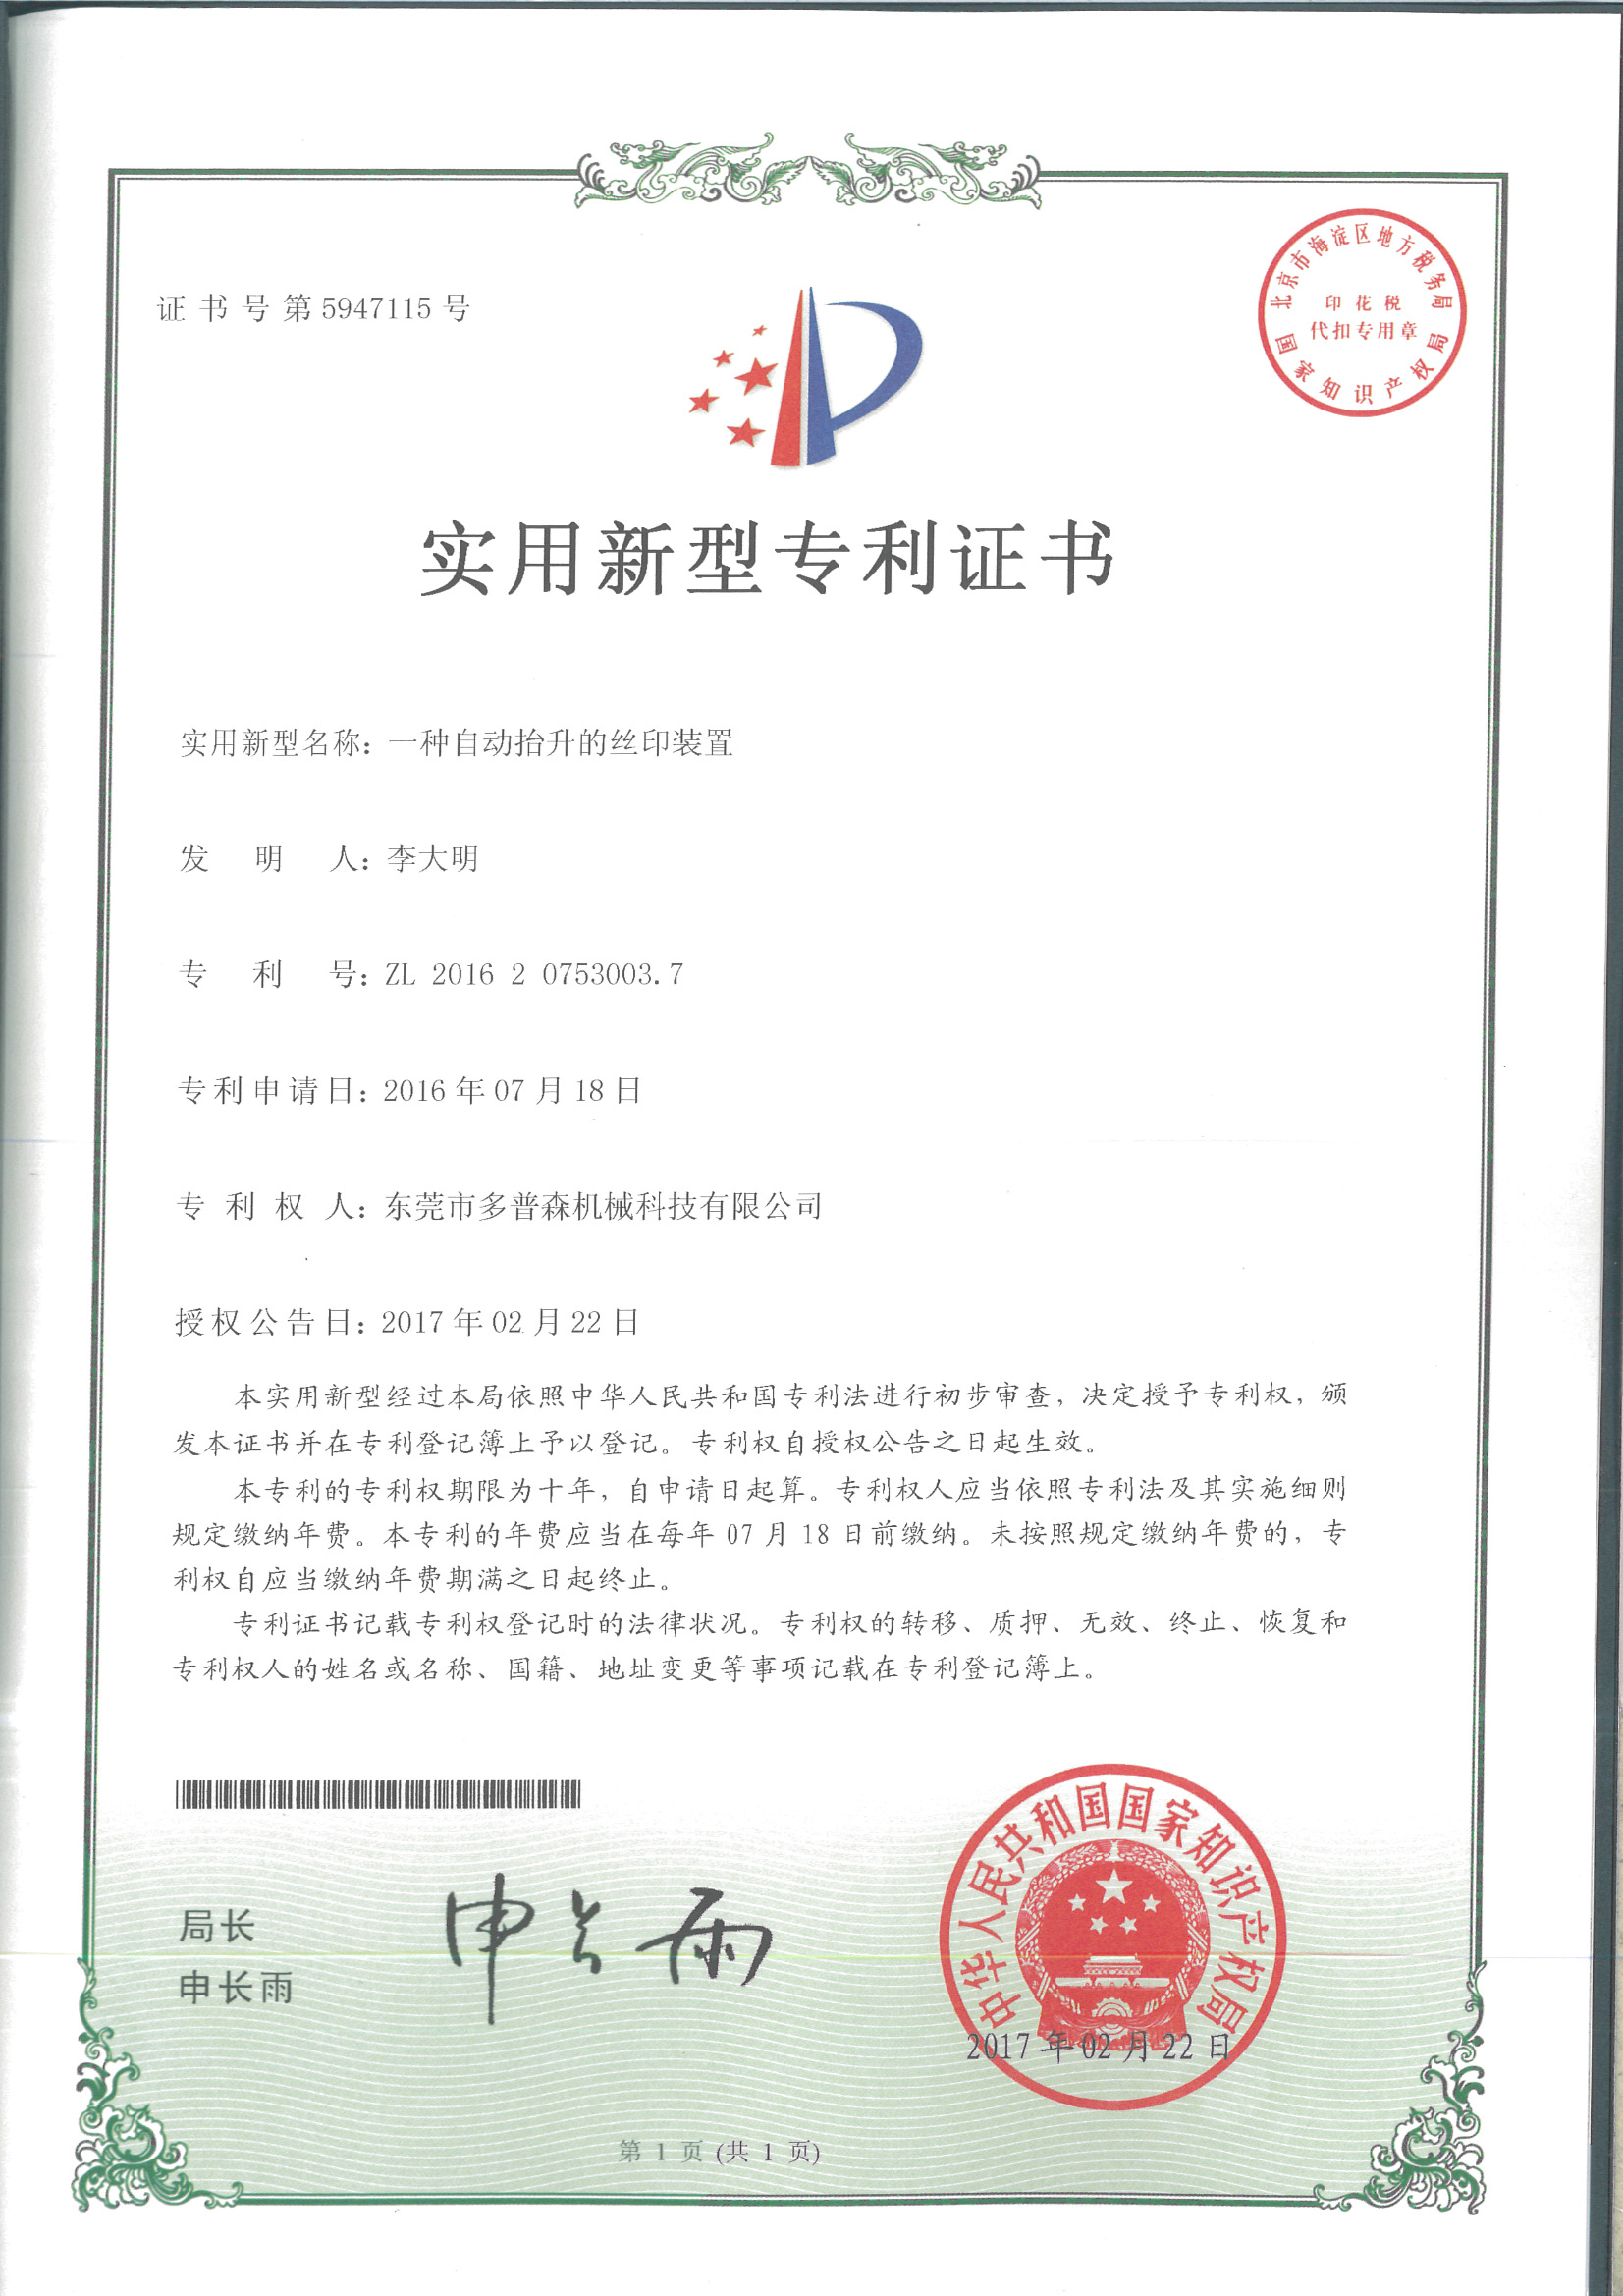 ZL for Auto Lifting Printing